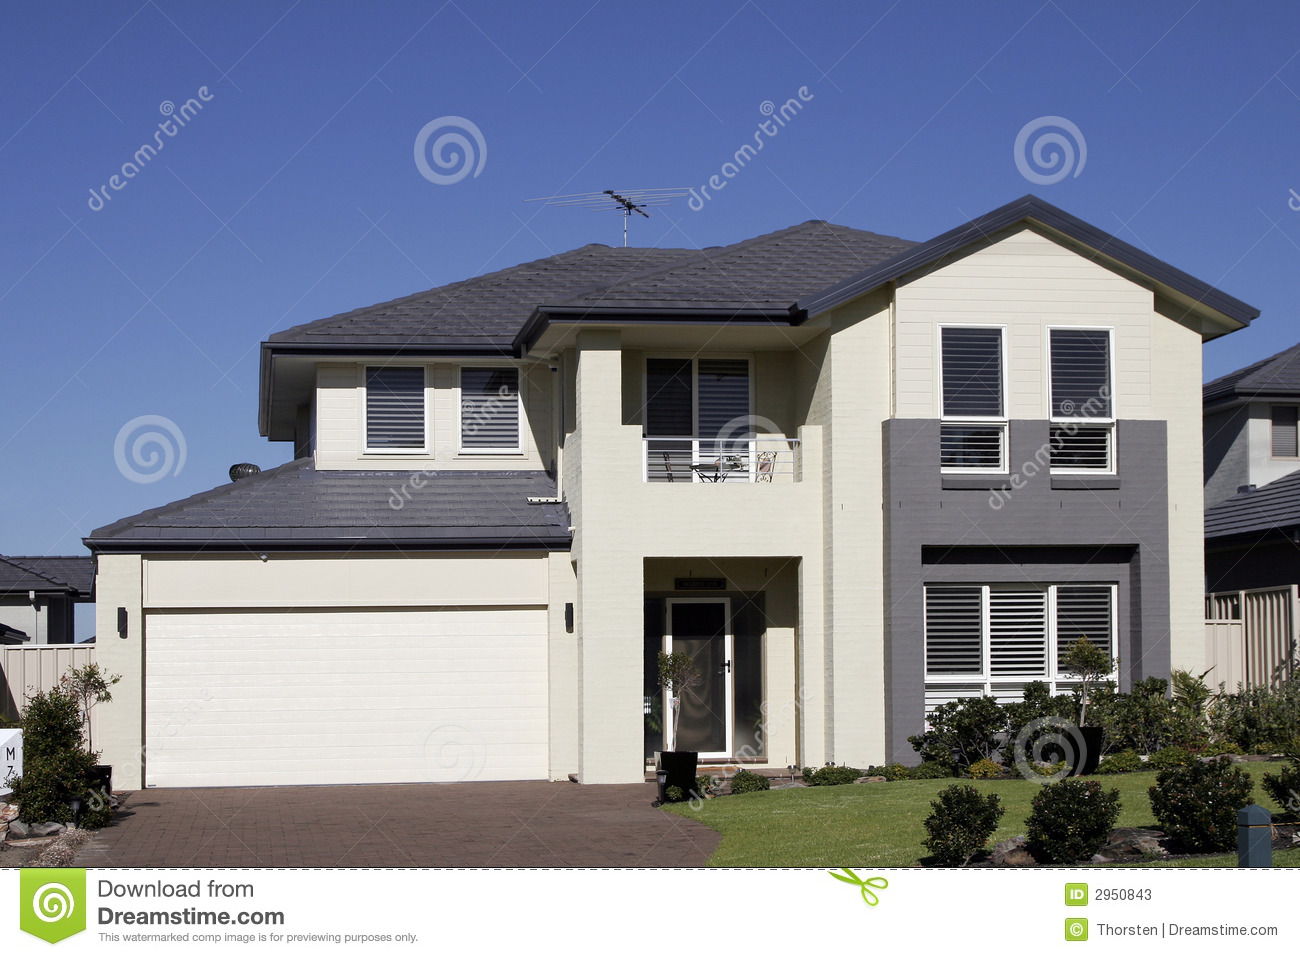 how to become a house painter in australia